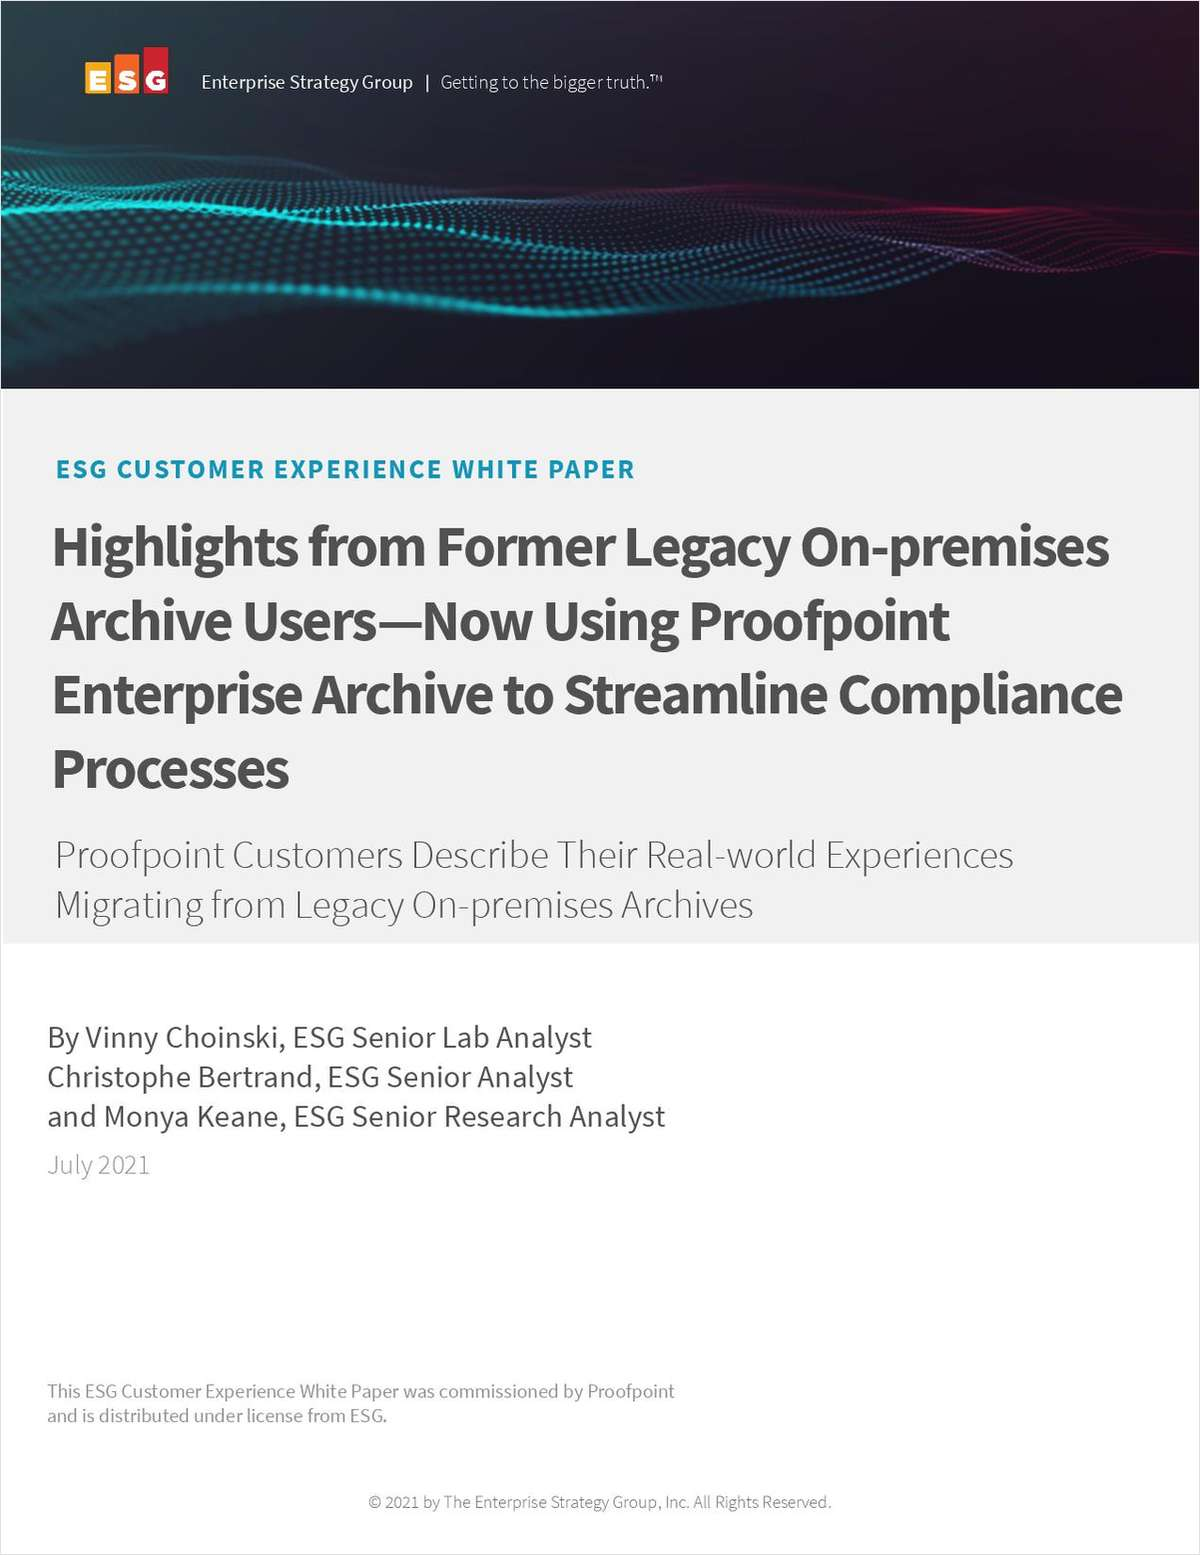 Highlights from Former Legacy On-Premises Archive Users Now Using an Enterprise Archive to Streamline Their Compliance Process